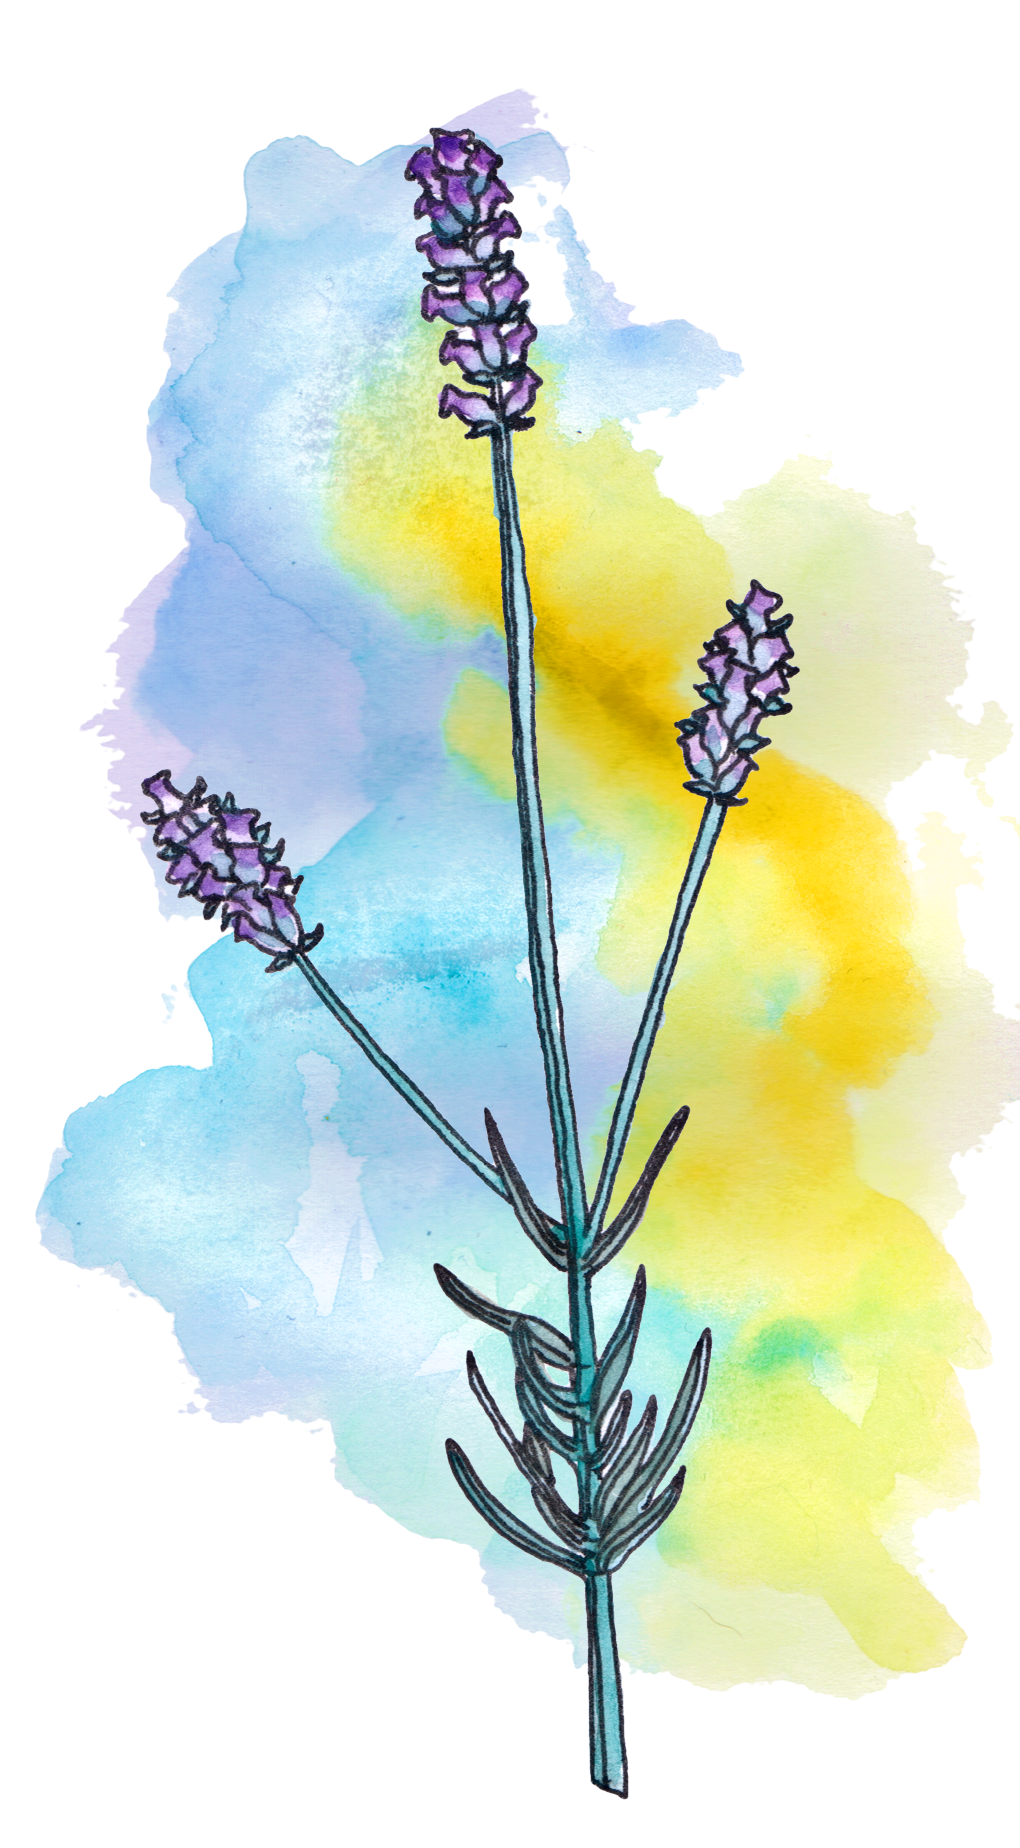 lavender astroherbology astroherbalism